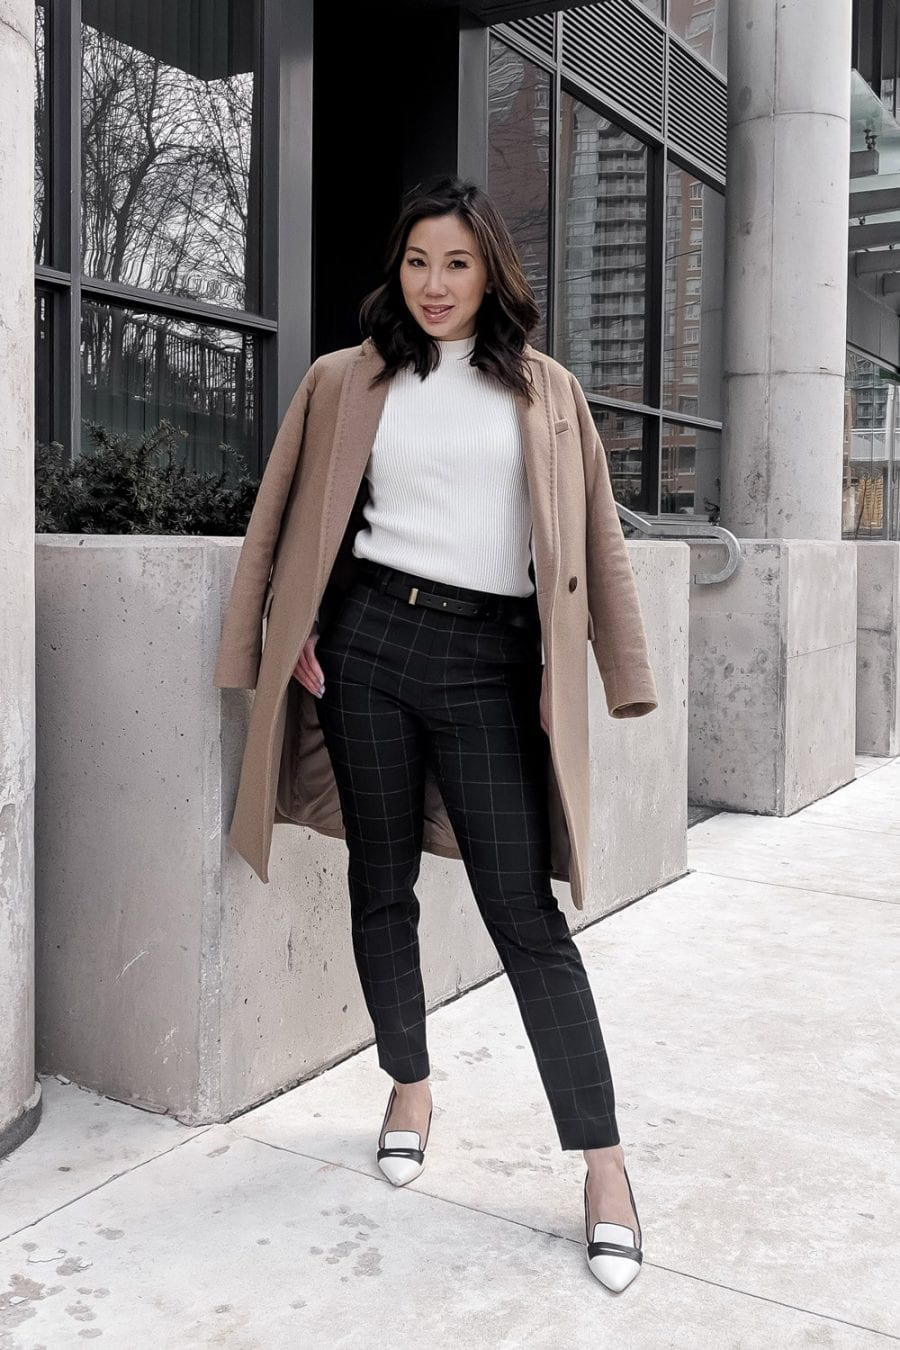 Workwear OOTD - camel coat, checkered pants, white sweater, contrast pumps